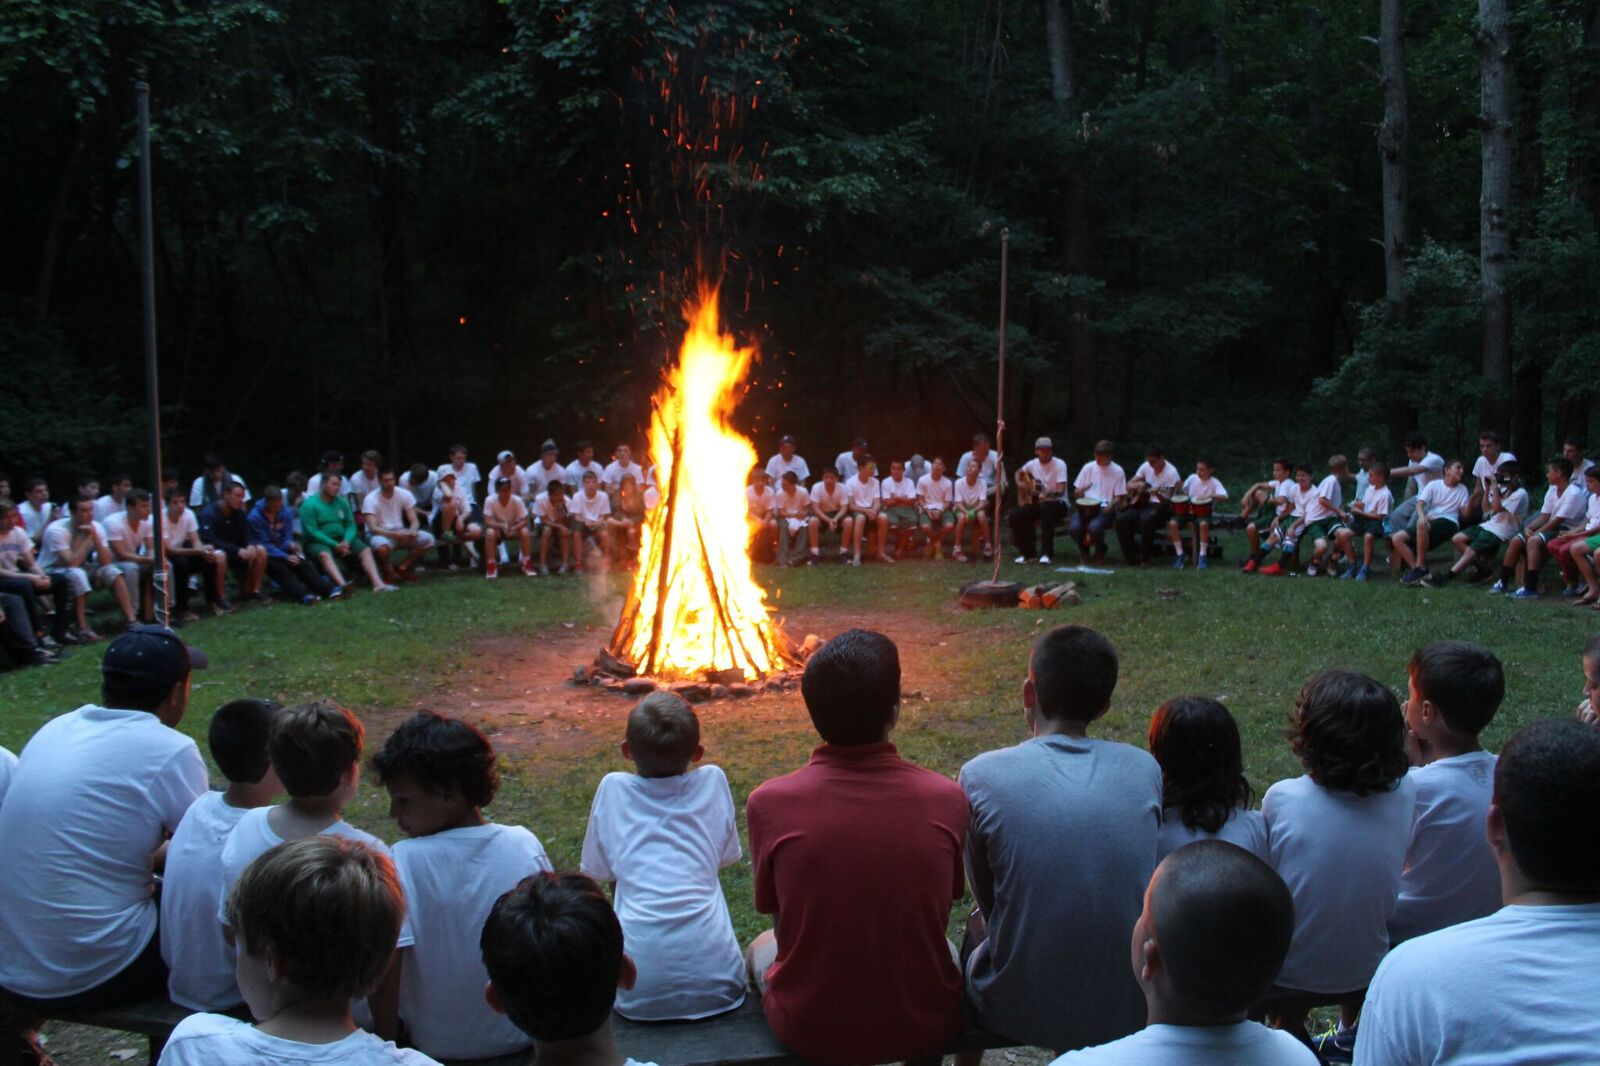 A powerful moment: Opening Campfires are less than 6 months away.